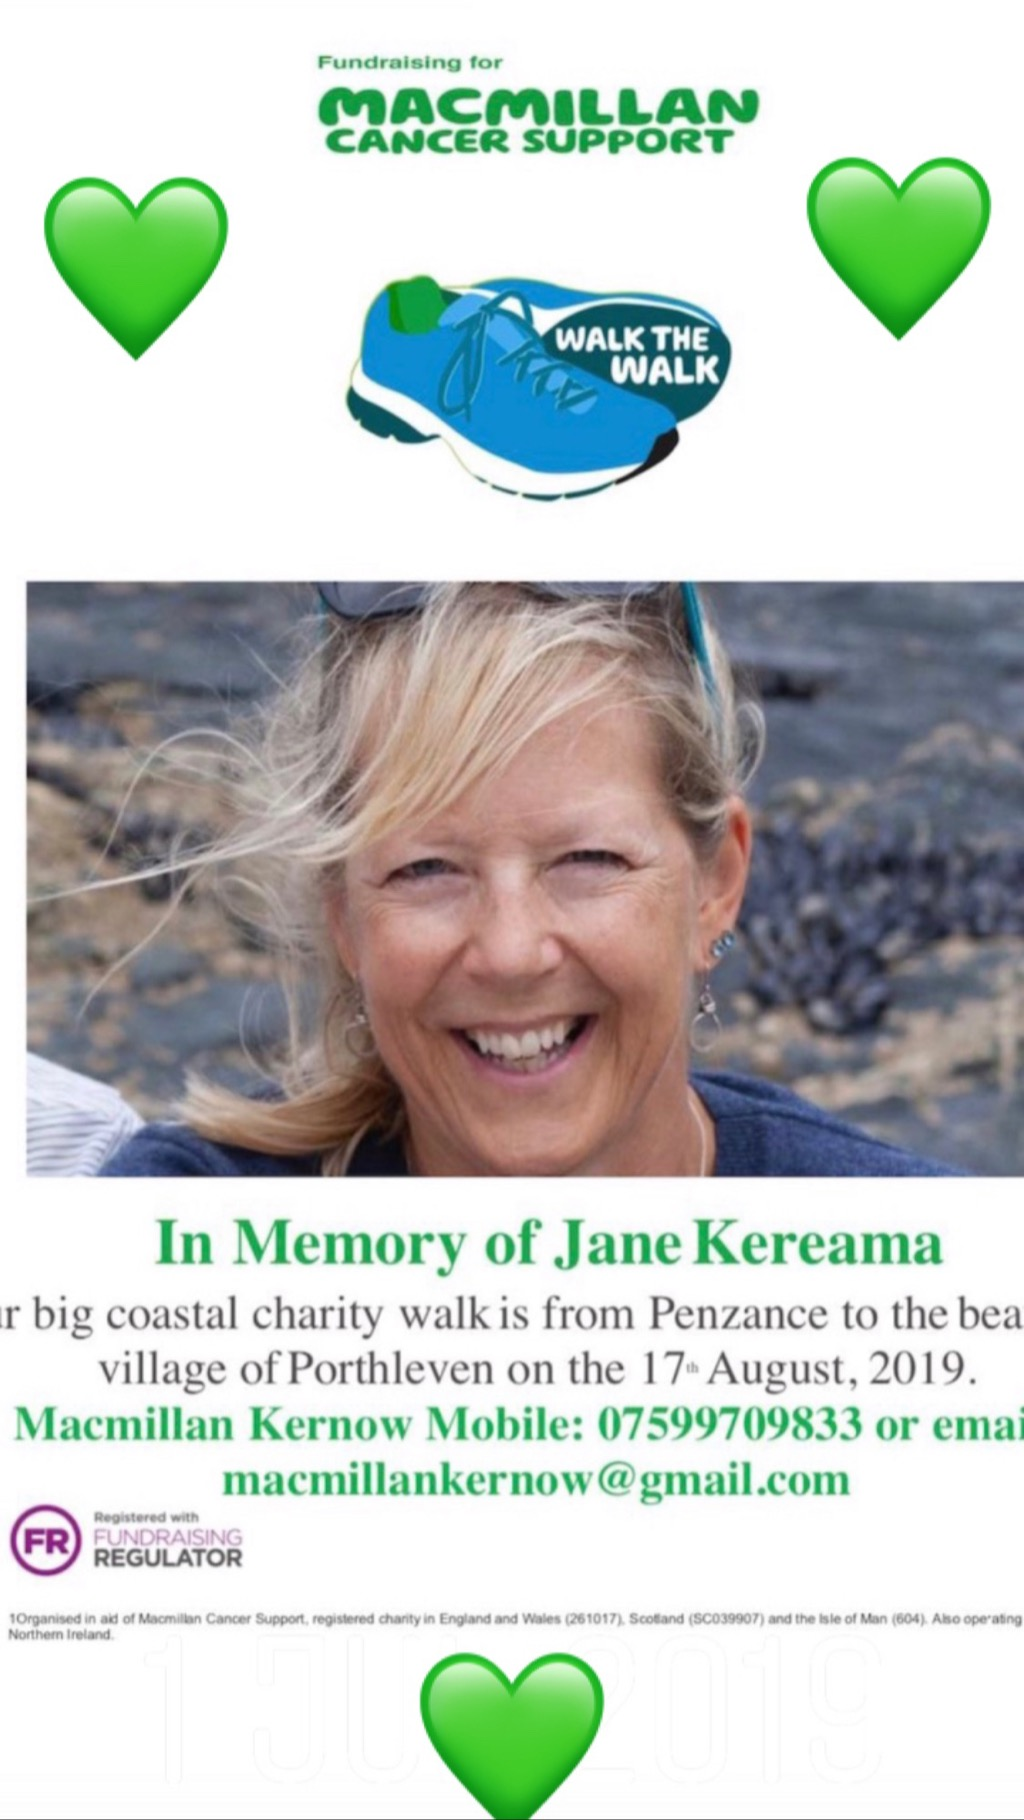 Charity Walk in Memory of Jane Kereama